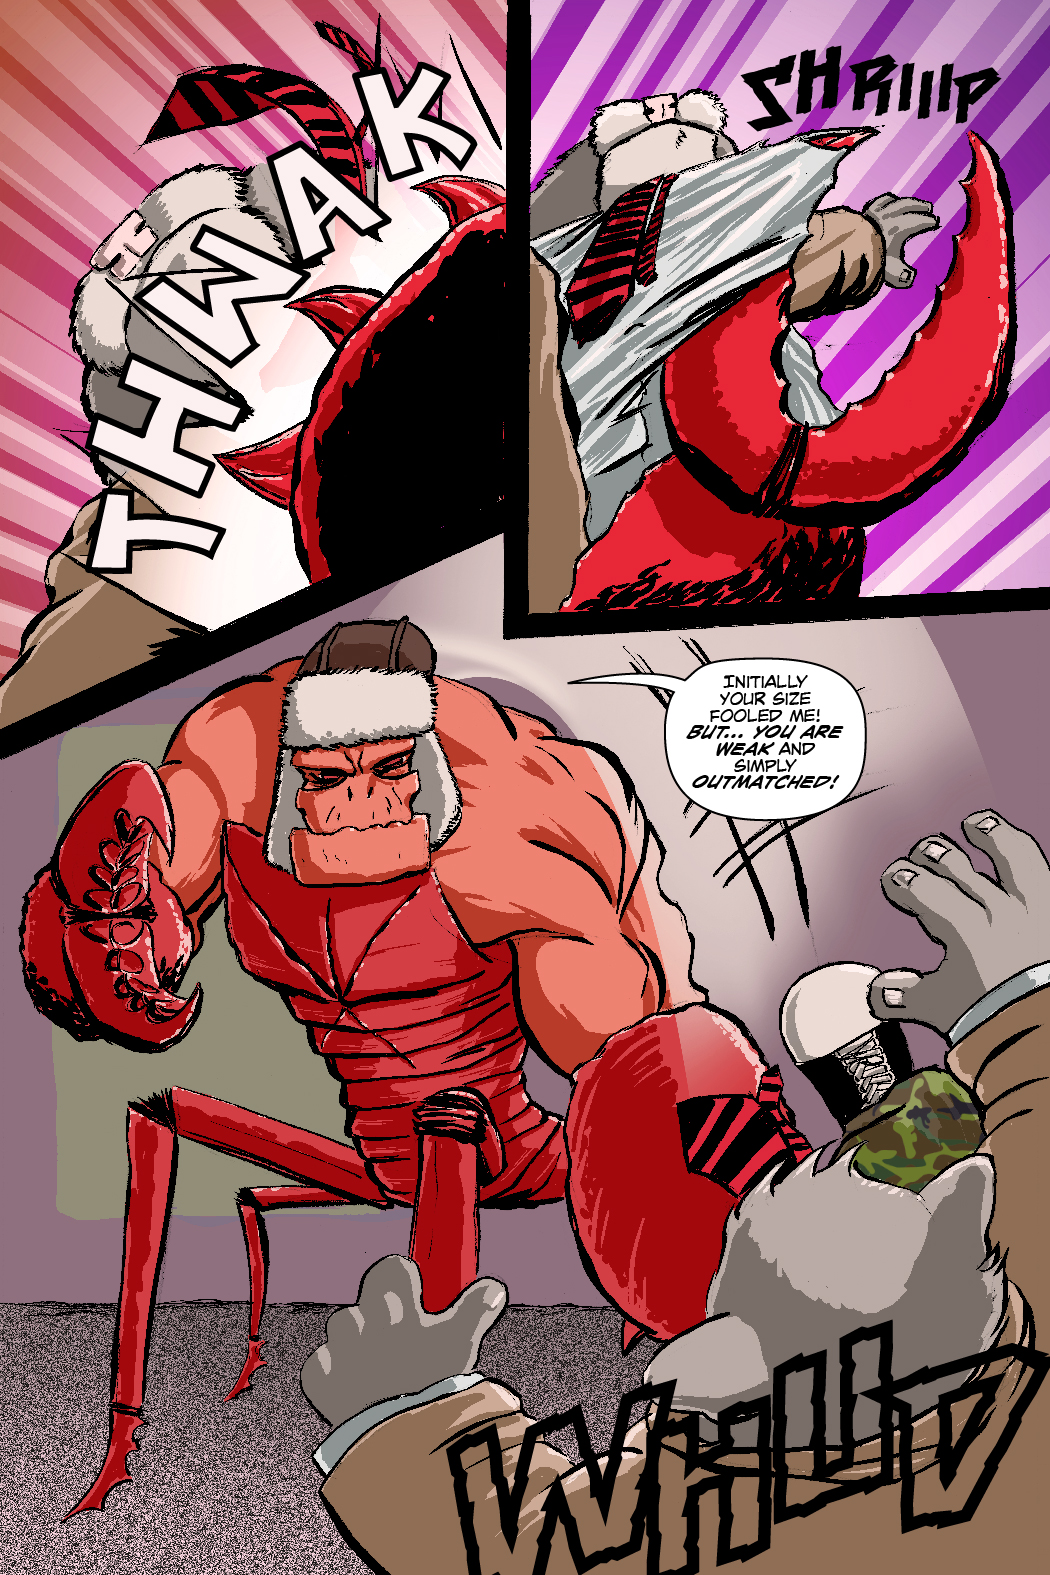 PAGE 53 Panel 1,2 and 3. Lobstar strikes Roosevelt, tears his coat and flips him. LOBSTAR: Your size fooled me! You're simply outmatched you idiot!